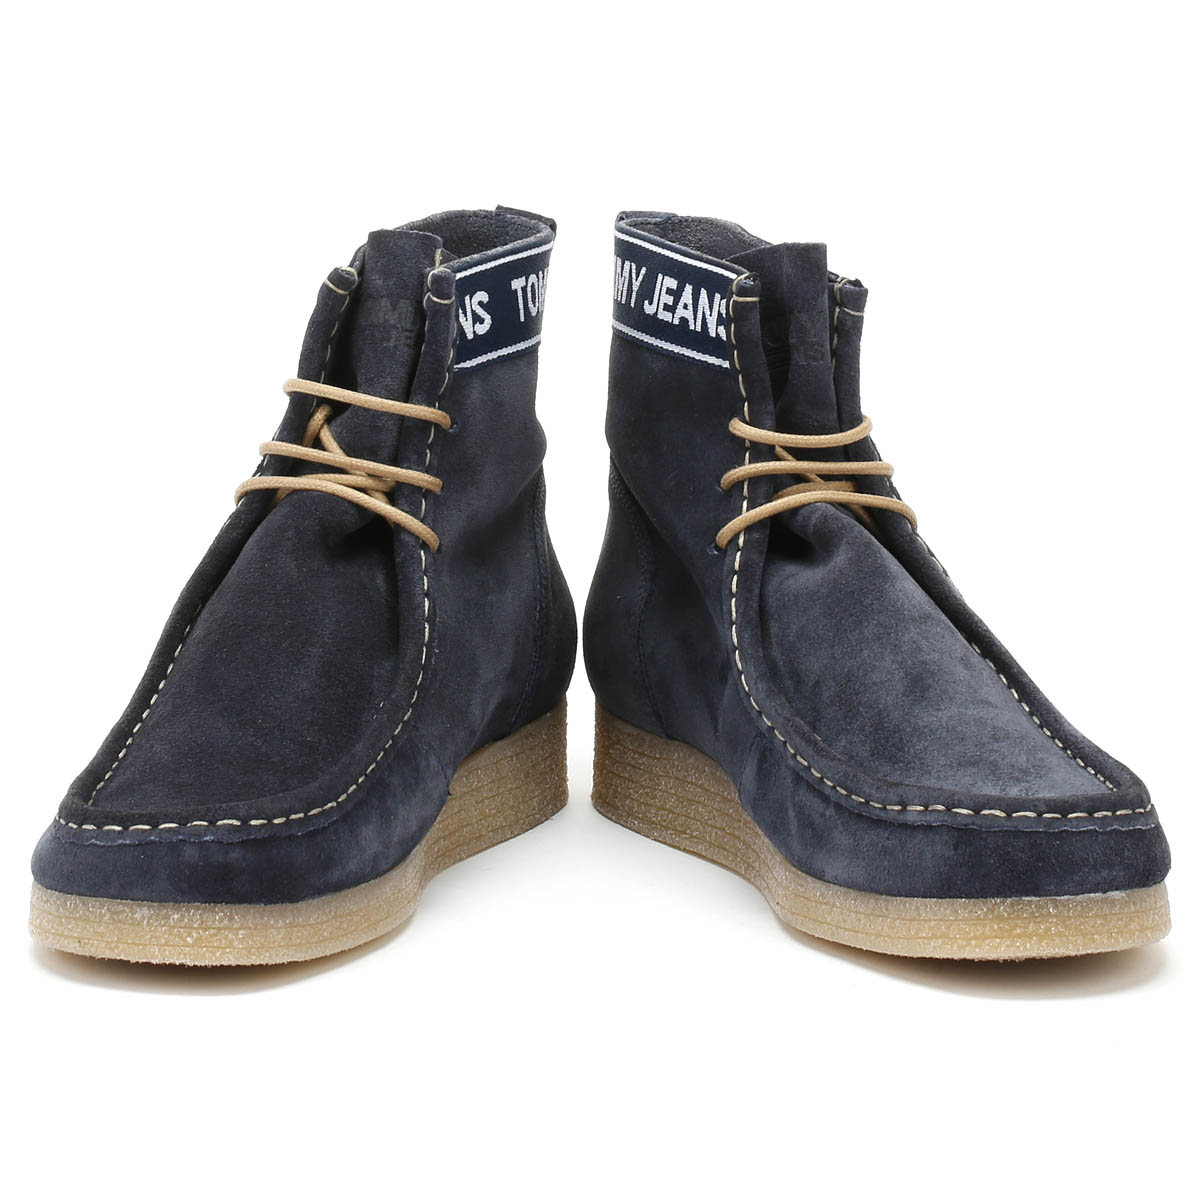 e605a494e25d8e Tommy Hilfiger Jeans Crepe Outsole Wallaby Mens Navy Boots Suede Shoes